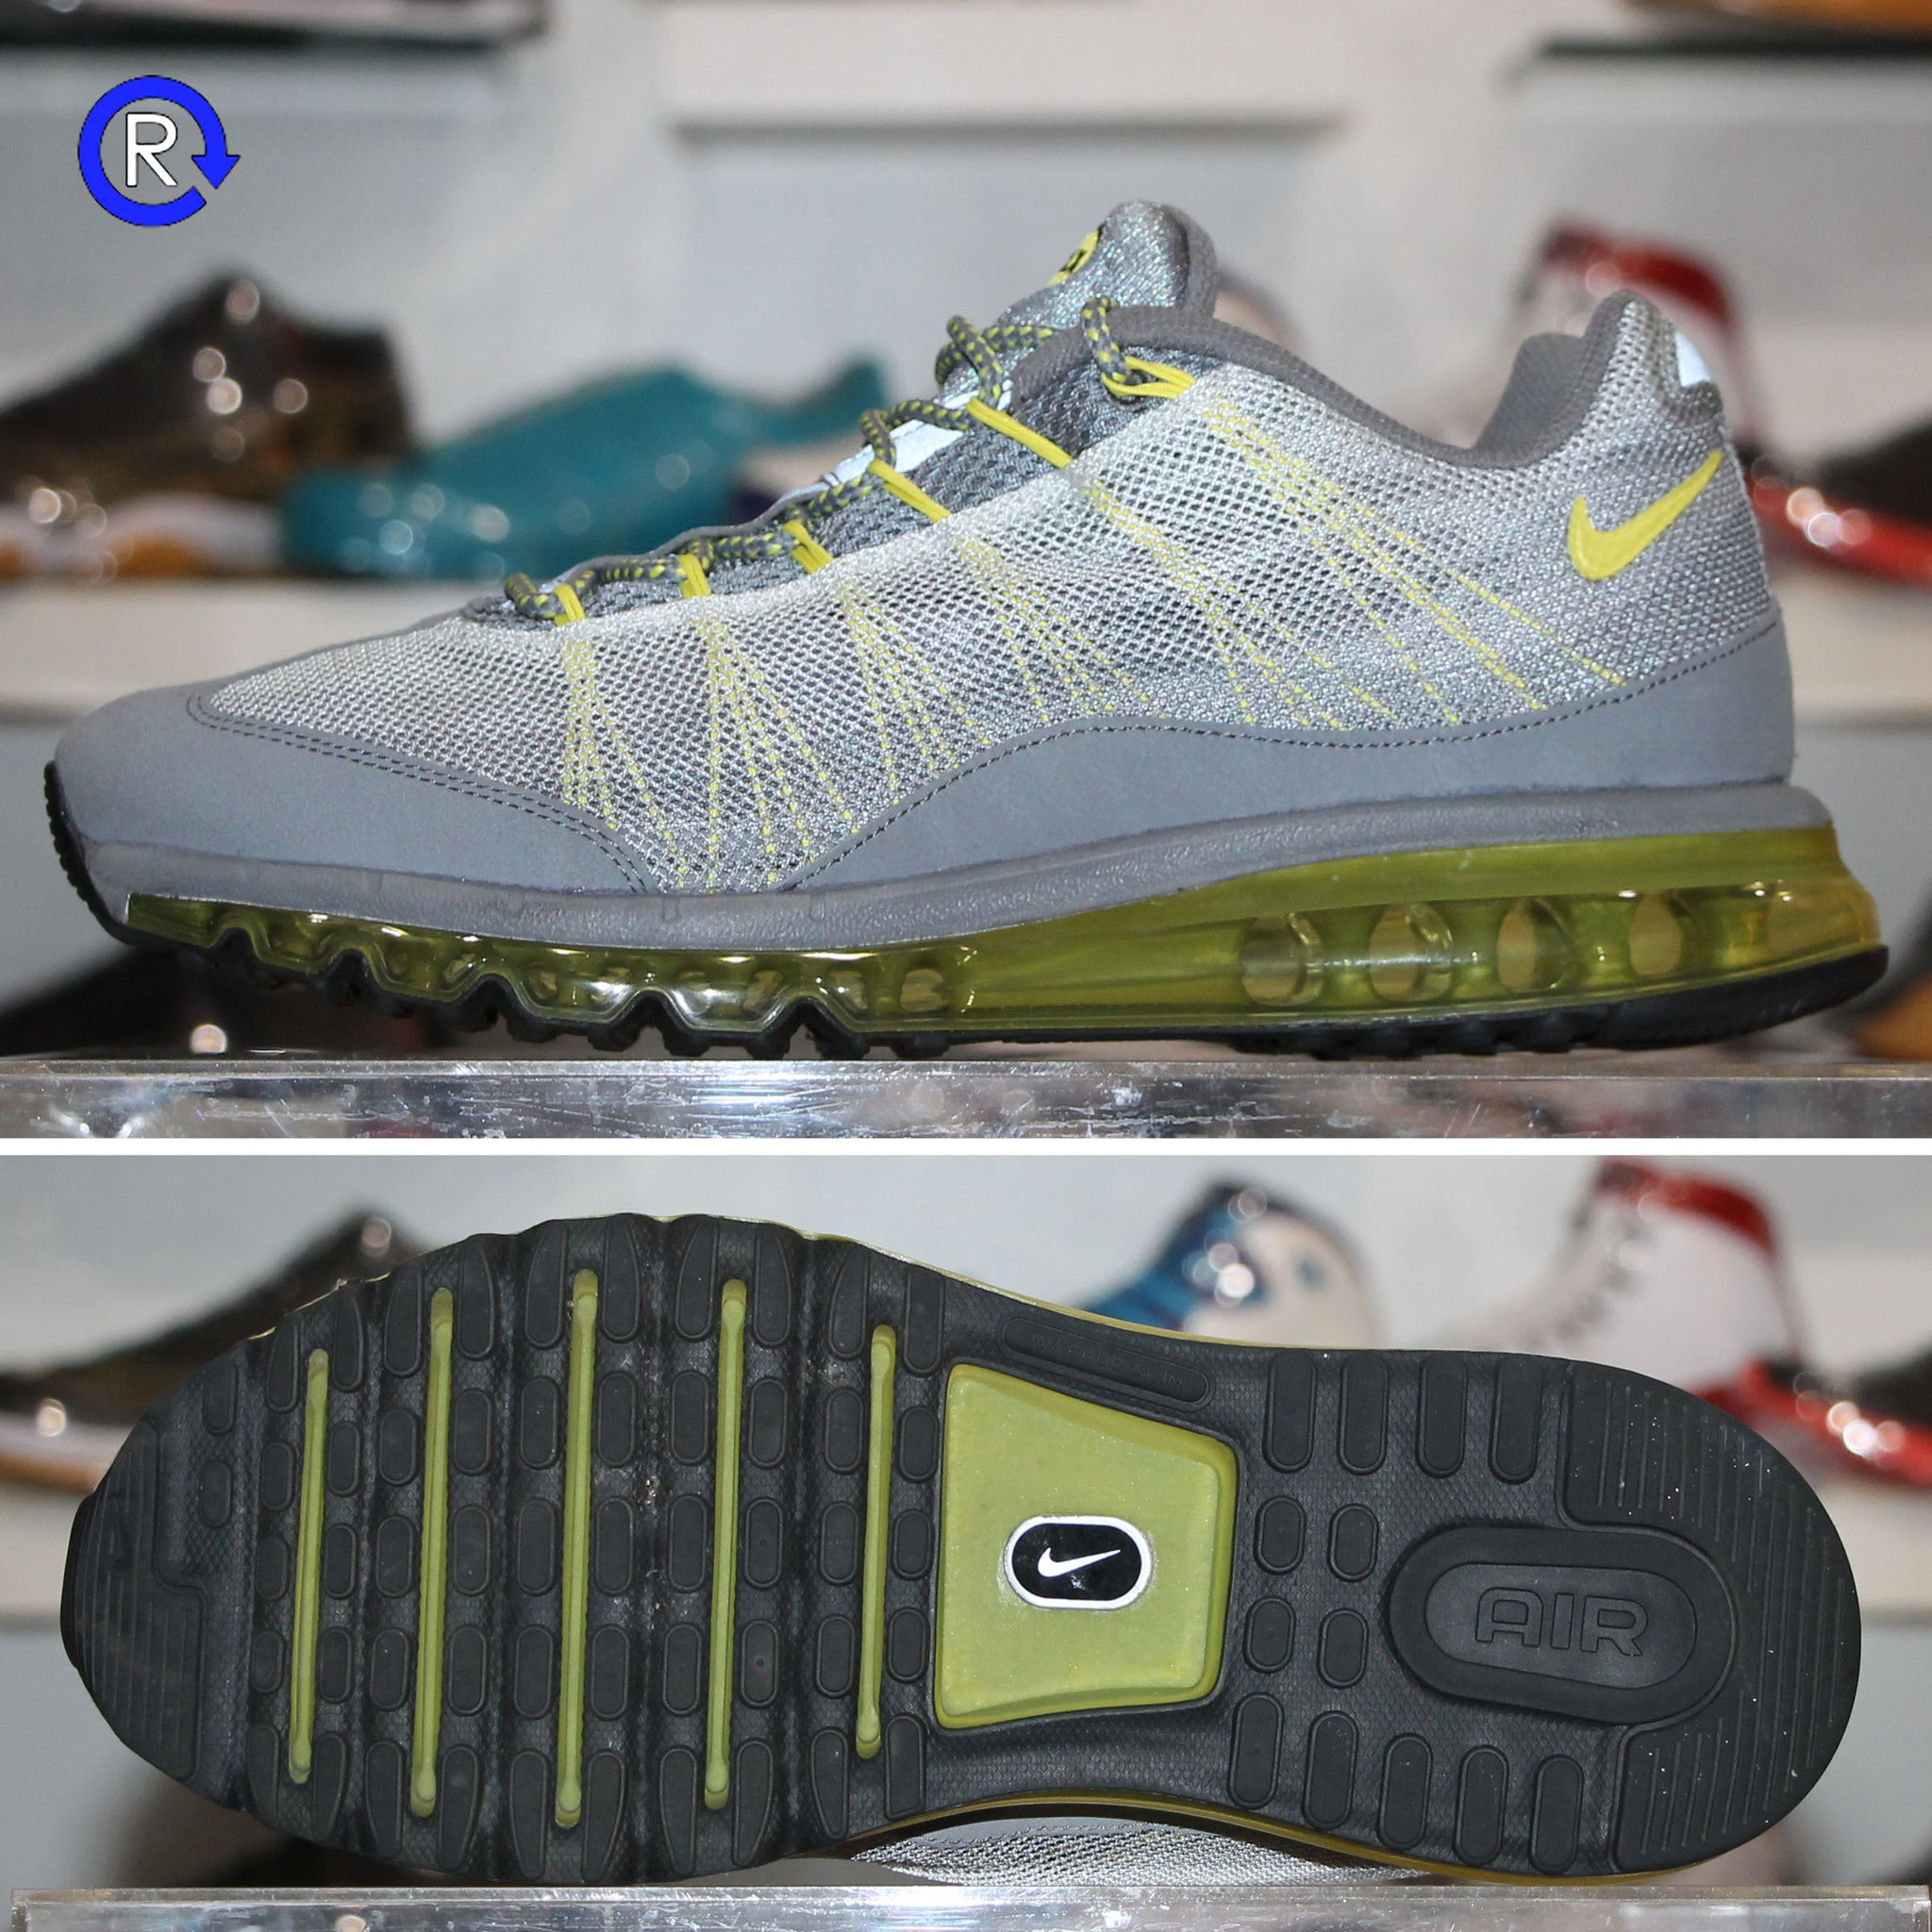 'Cool GreySonic Yellow' Nike Air Max 95 2013 Dynamic Flywire (2013) Rozmiar 11.5 Stan: 8.510.  Size 11.5 Condition: 8.510.